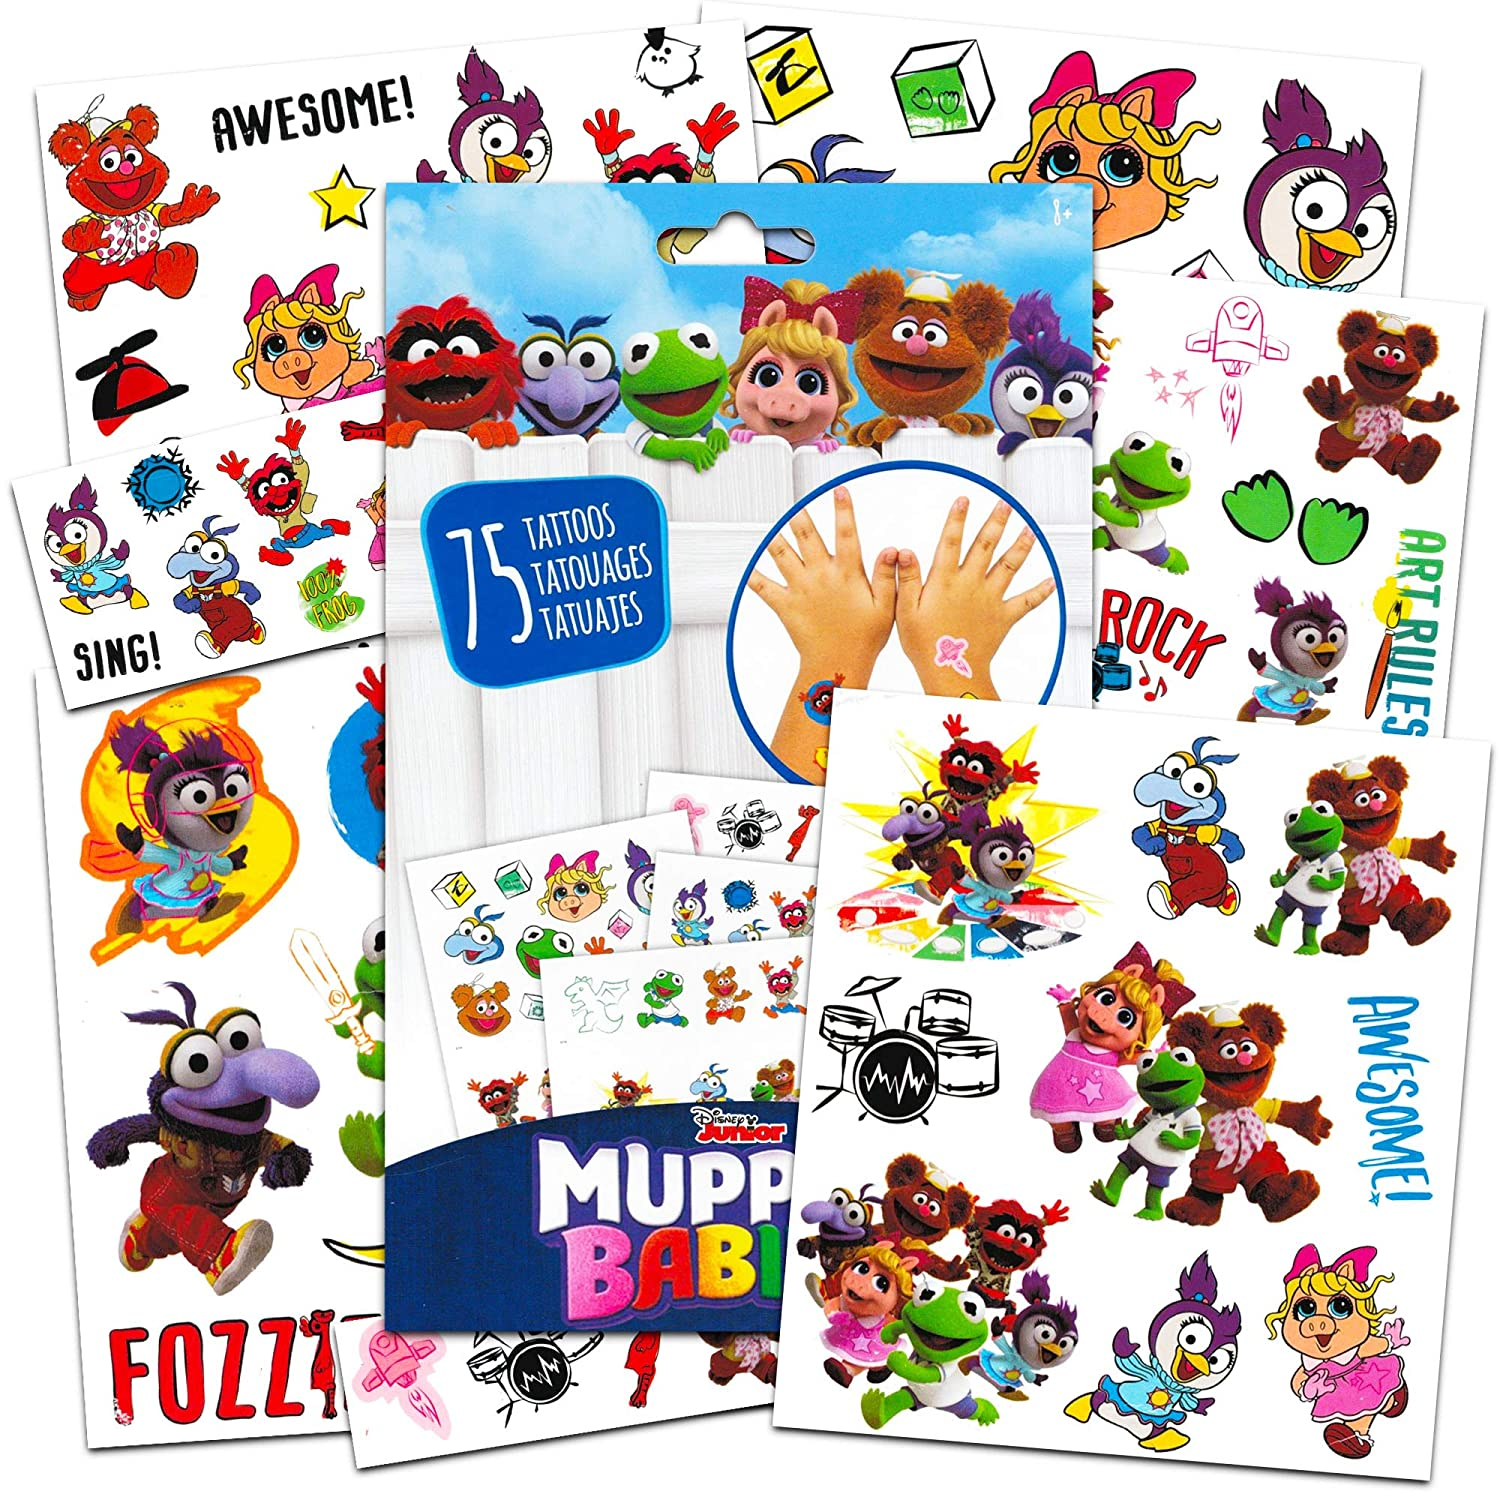 Fozzie Muppet Babies Toys Disney Muppet Babies Stickers and Tattoos Party Supplies Pack ~ 120 Muppets Stickers and 75 Temporary Tattoos Featuring Kermit Miss Piggy and More